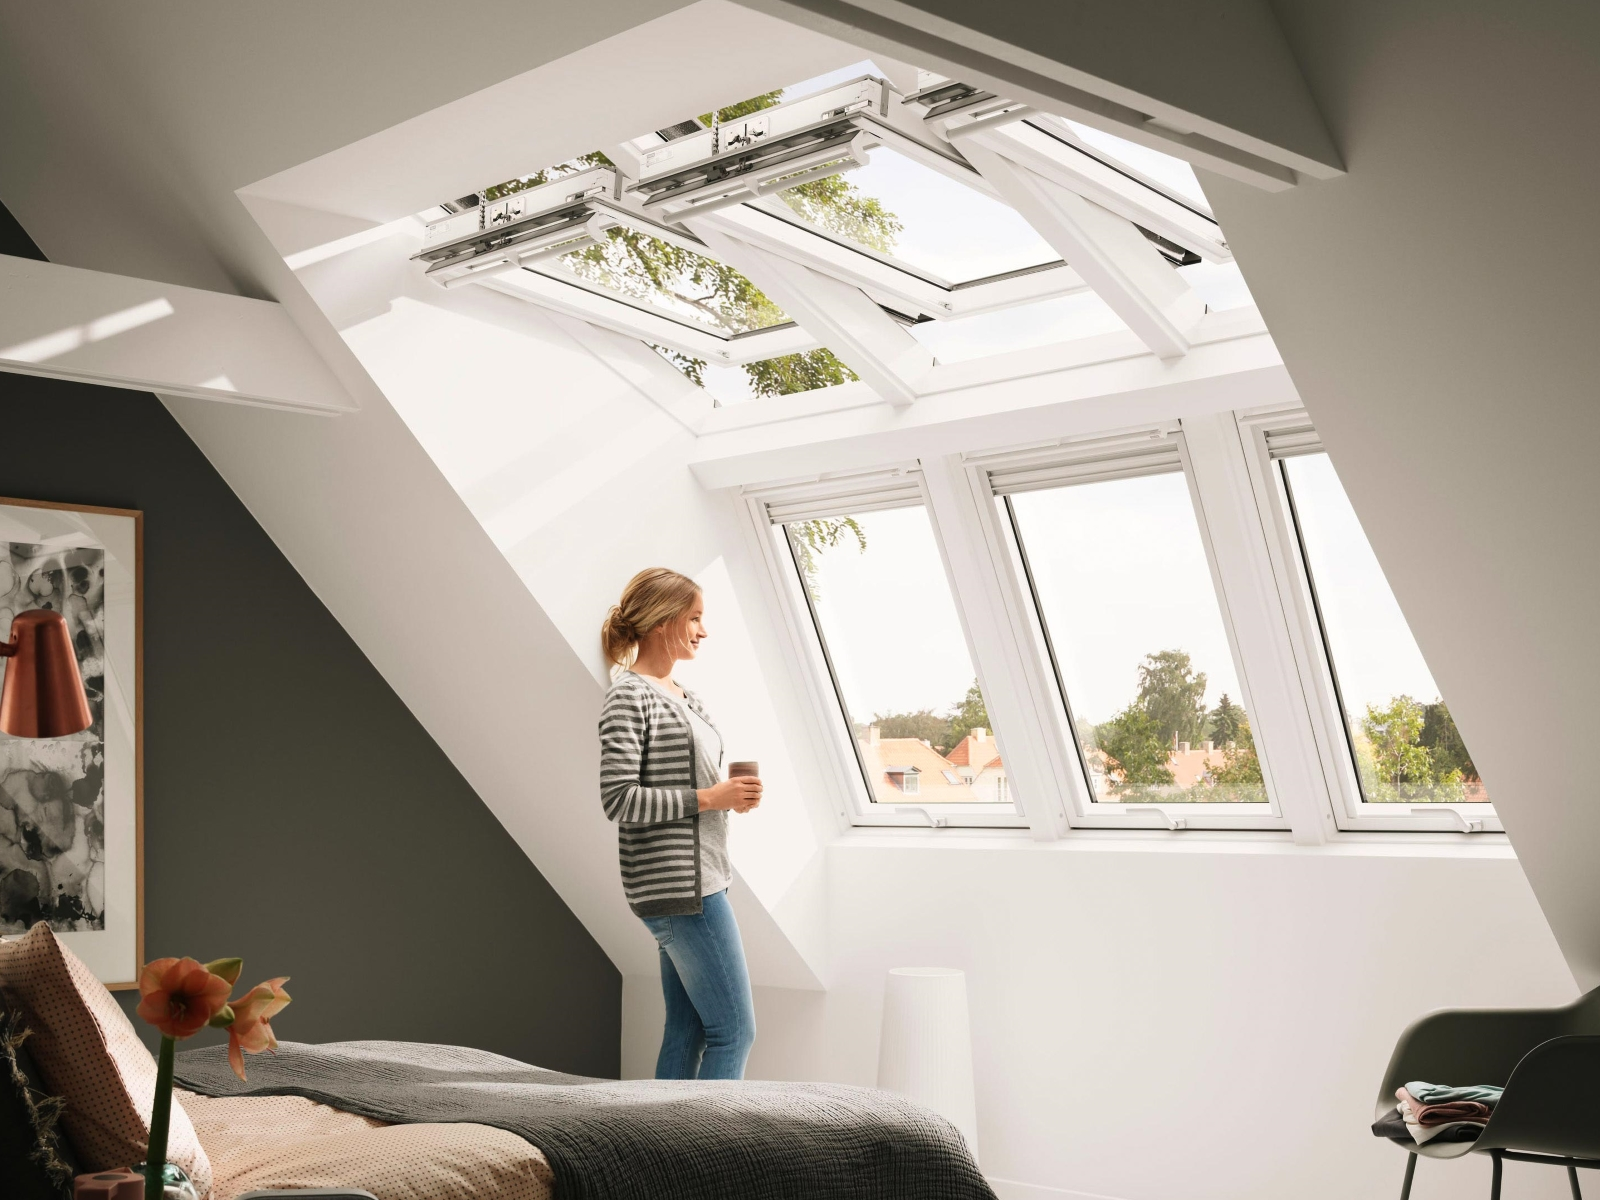 velux panorama innen krawczyk ihr dachdecker aus freiburg. Black Bedroom Furniture Sets. Home Design Ideas